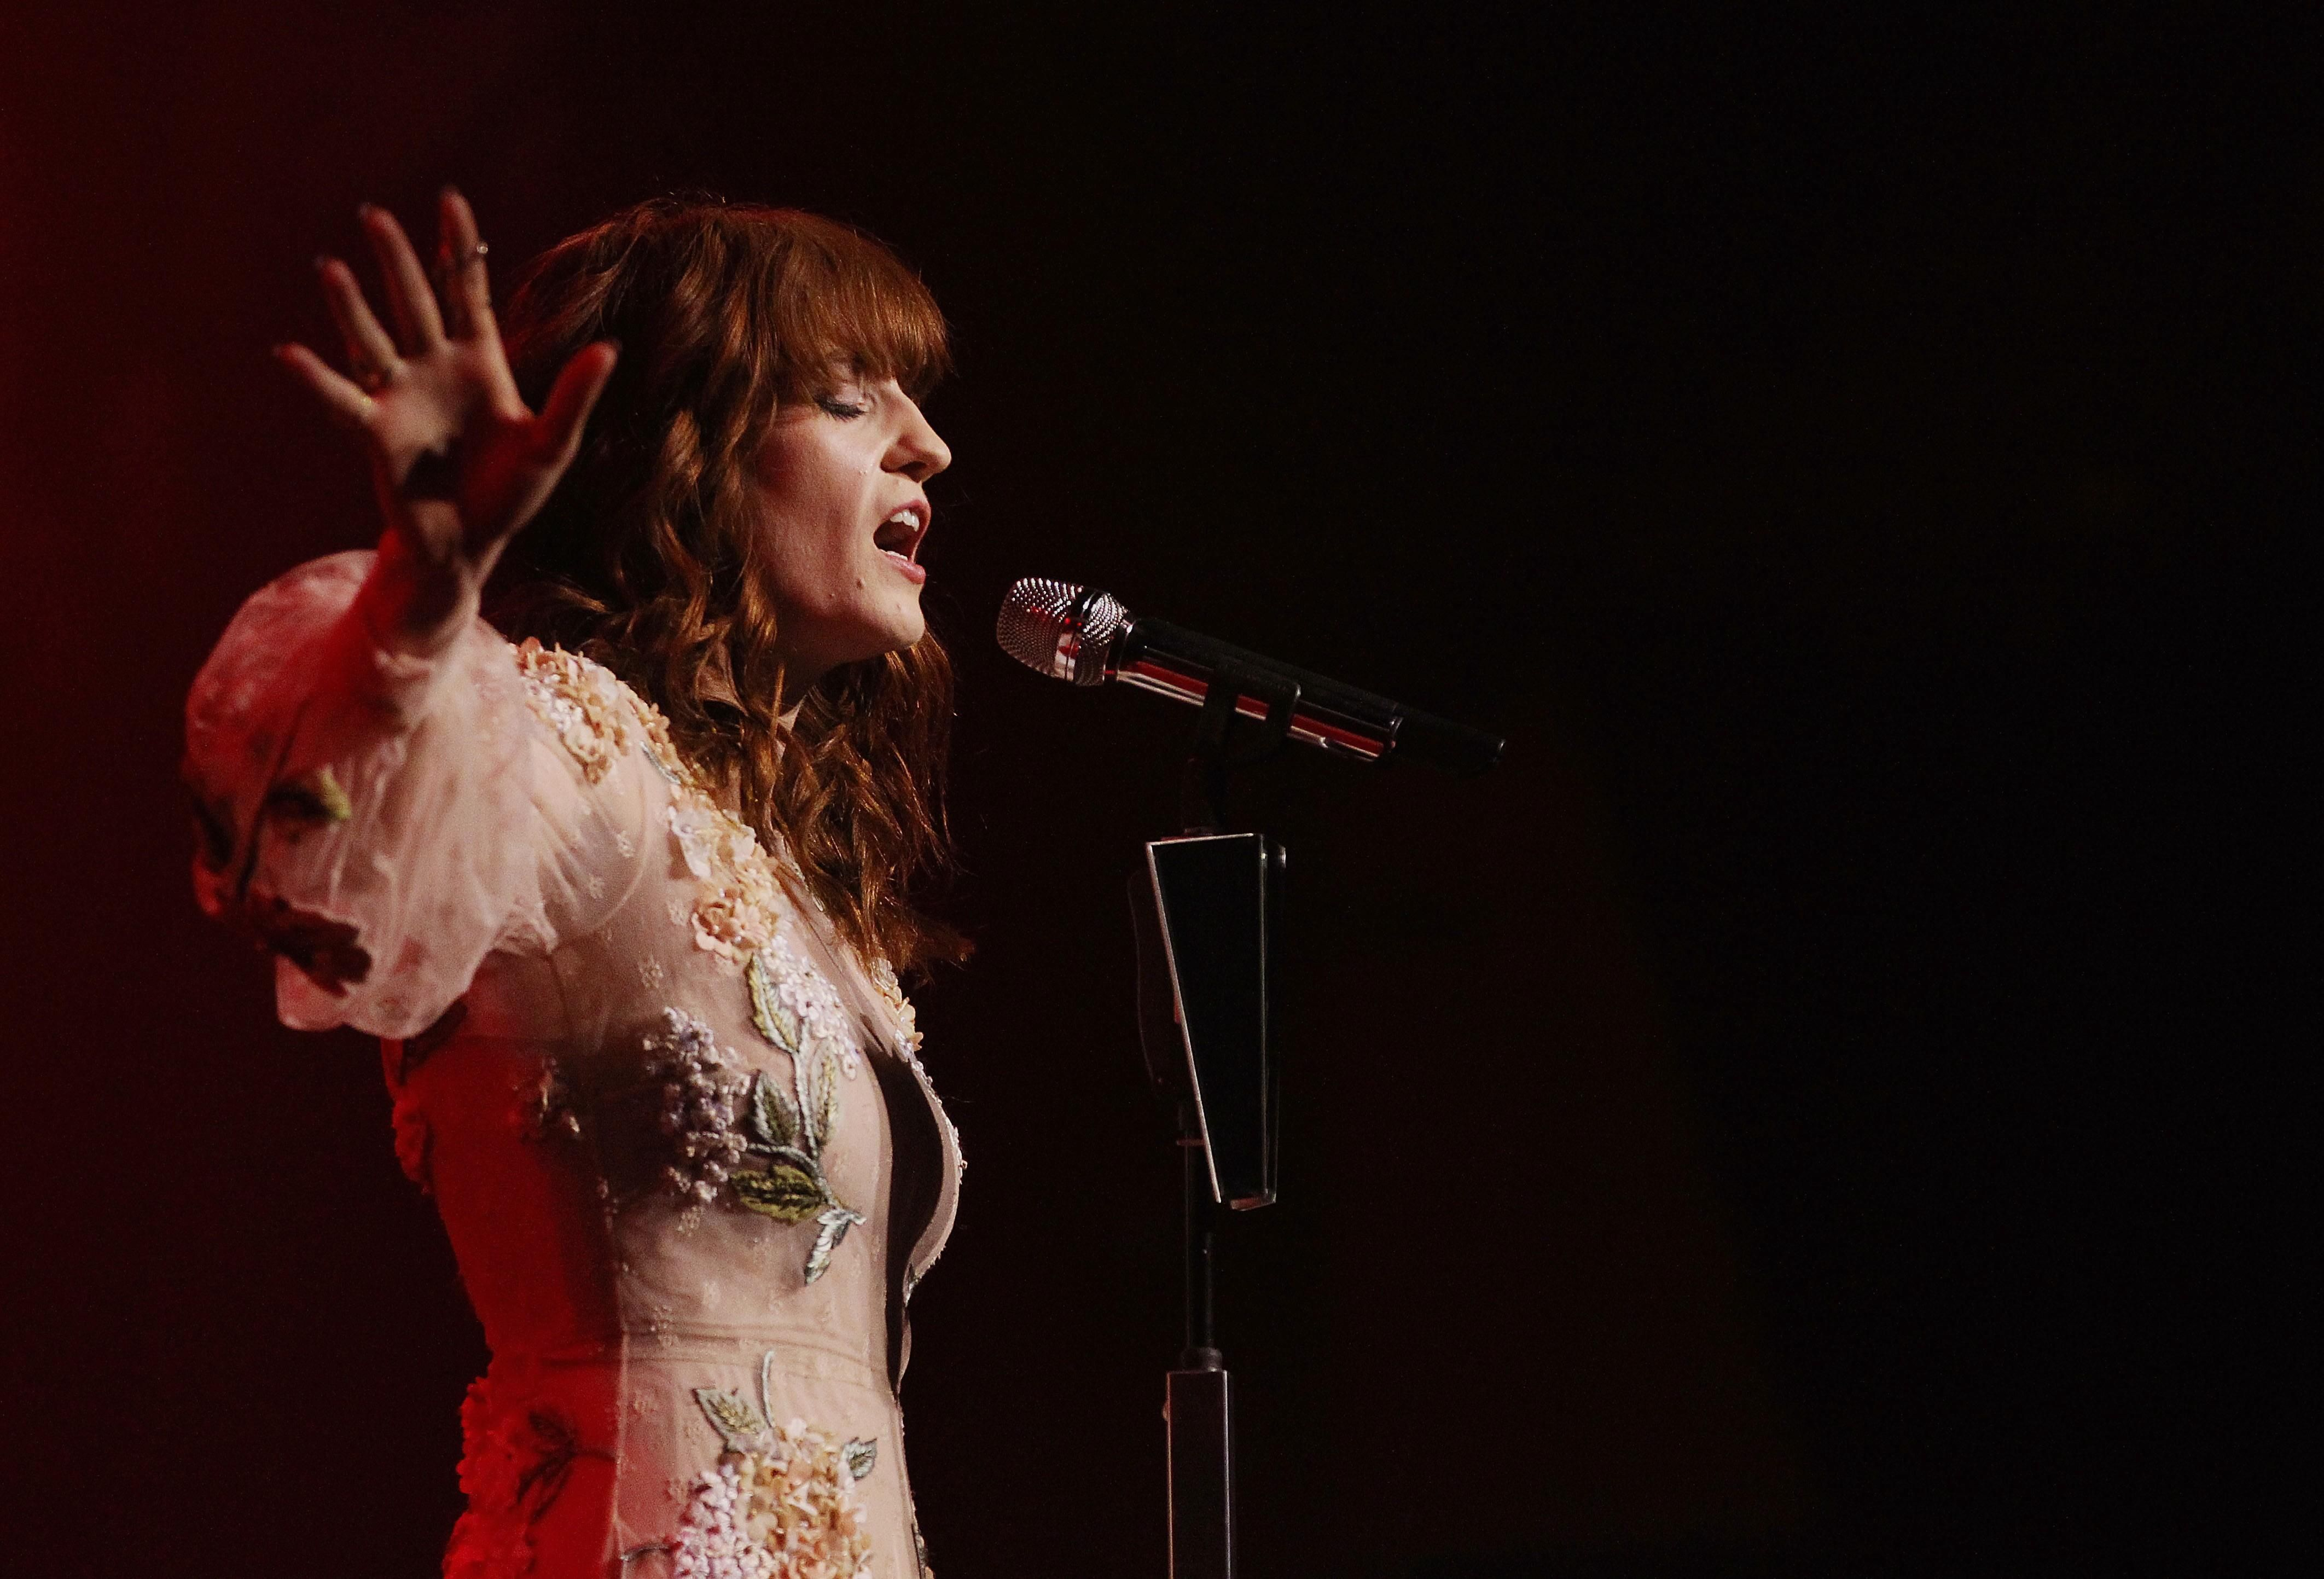 16 Florence Welch Wallpapers High Quality Resolution Download Florence Welch Florence Welch